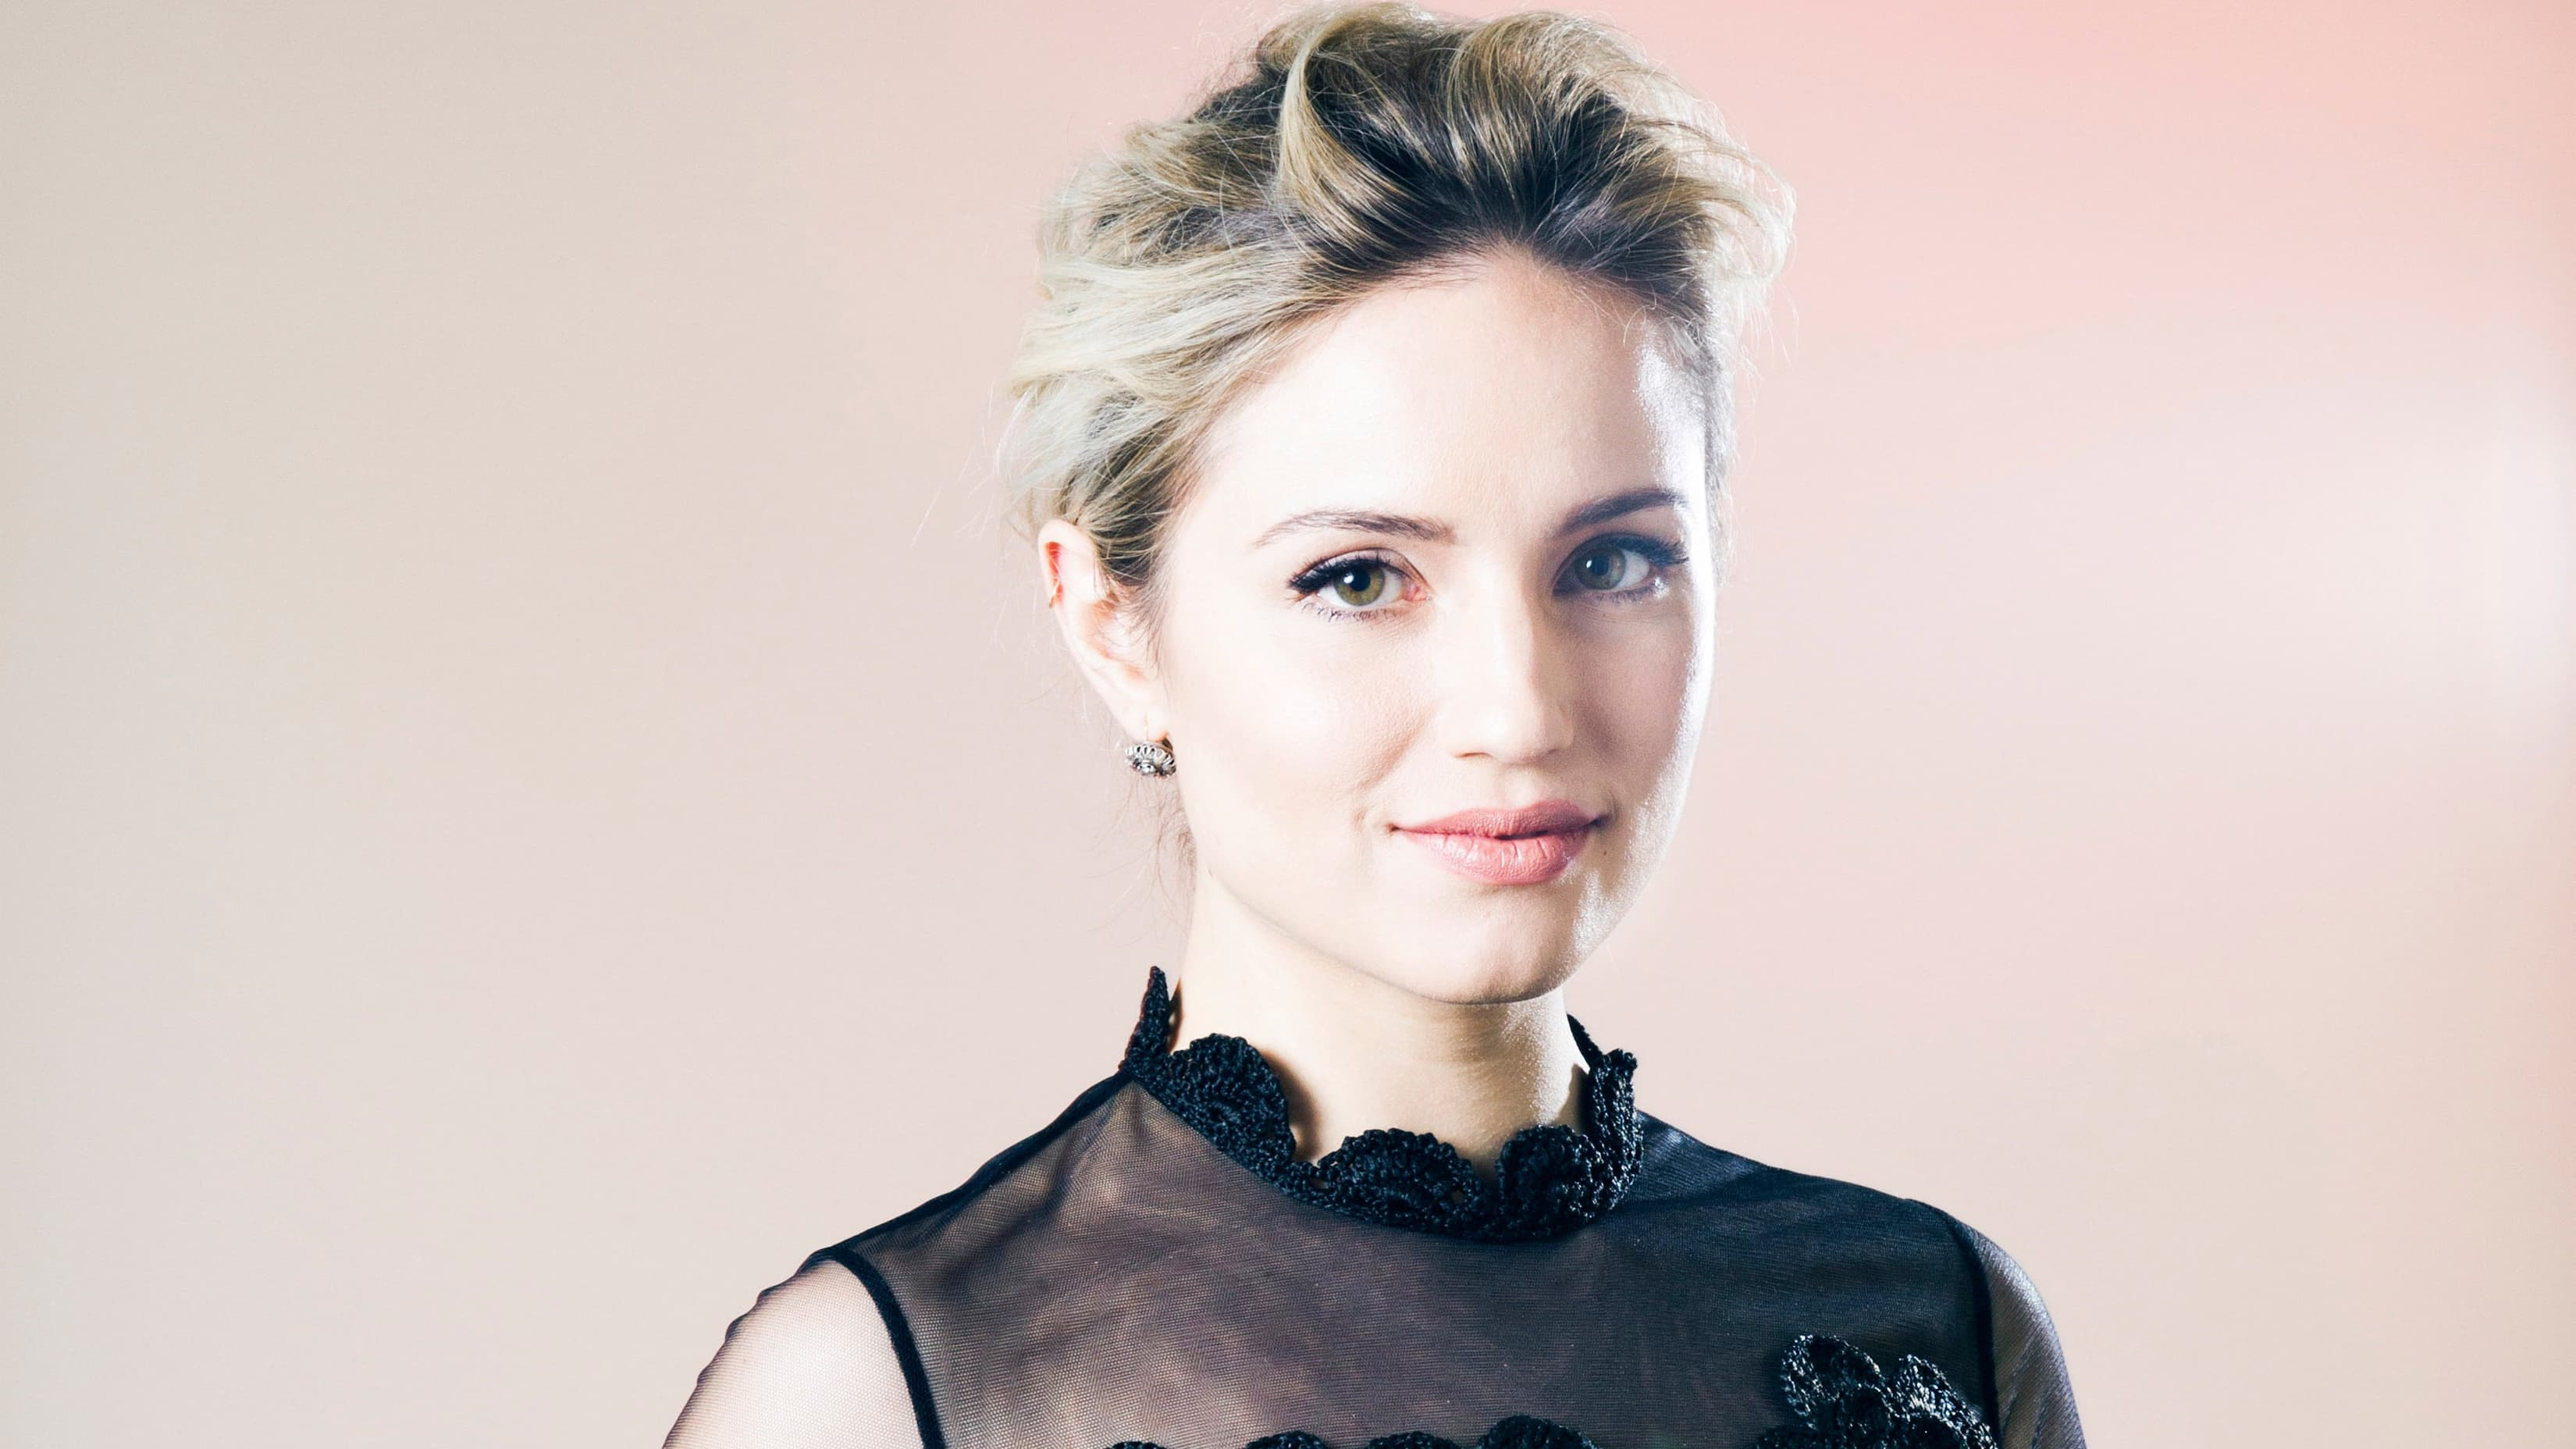 Amazing Dianna Agron wallpapers